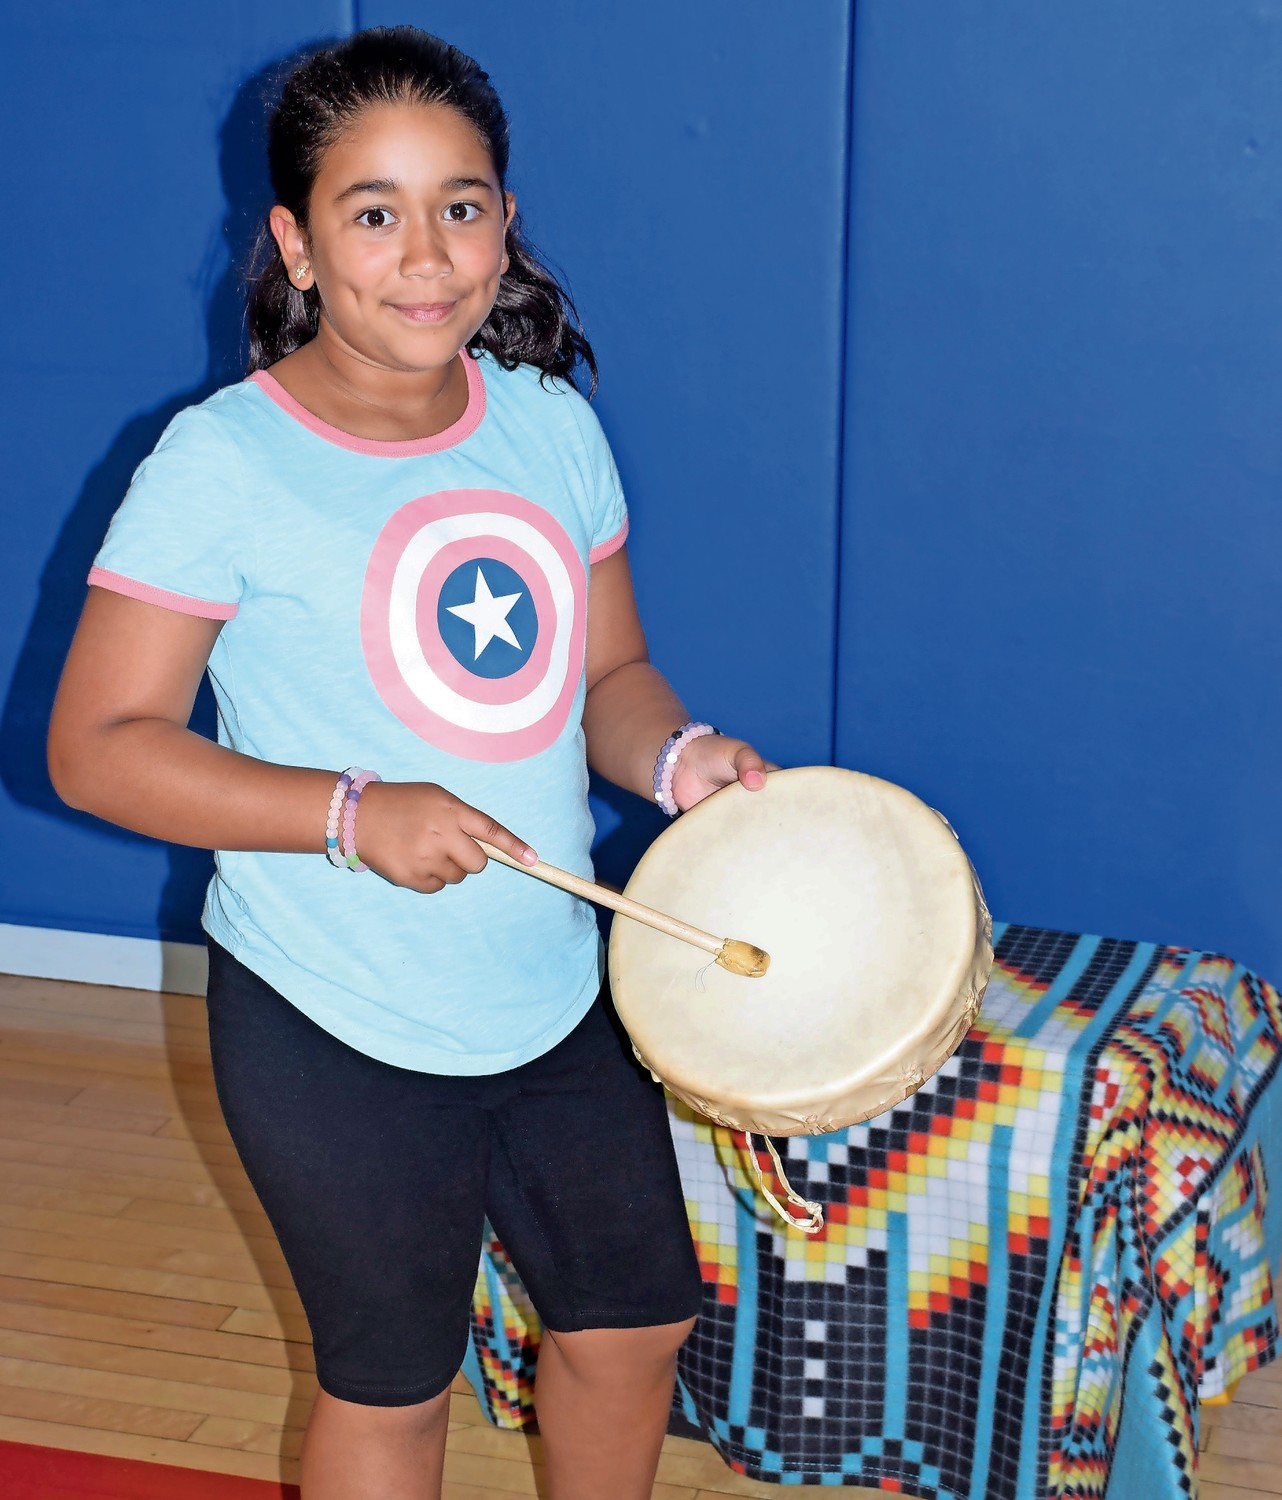 Parkway Elementary School fourth-grader Brianna Almanzar created music by beating a drum.